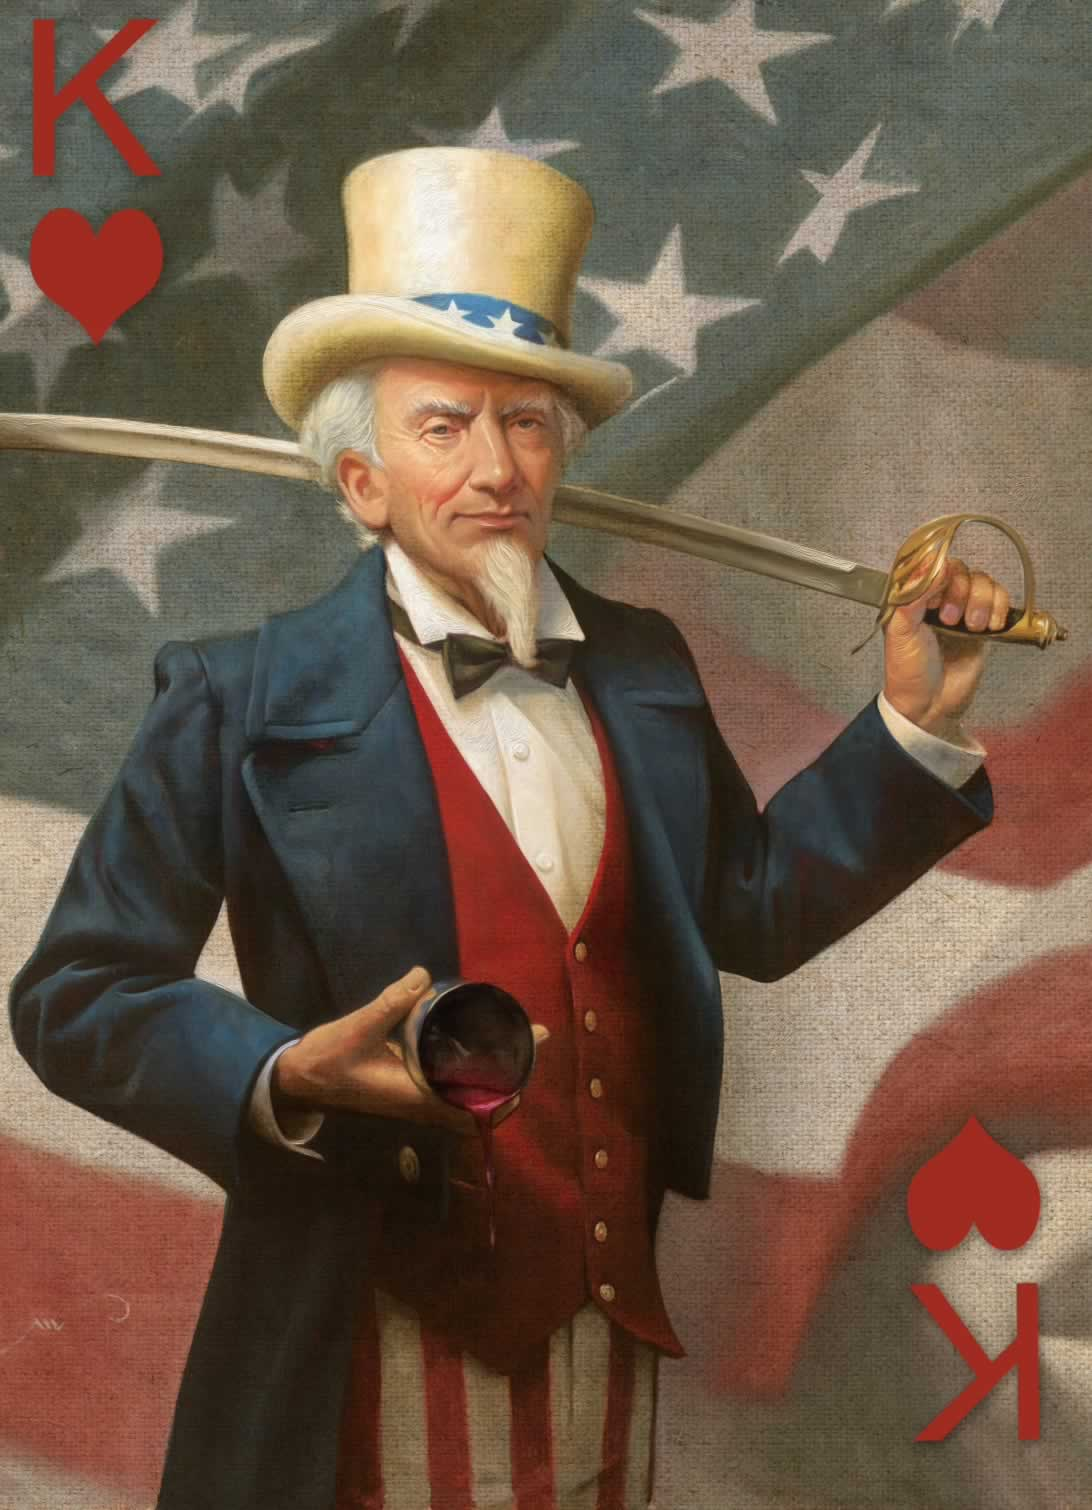 King of Hearts, illustrated by Mike Wimmer, exhibited at the Norman Rockwell Museum in Massachusetts, as part of the  52 Reasons to Love a Vet  project.